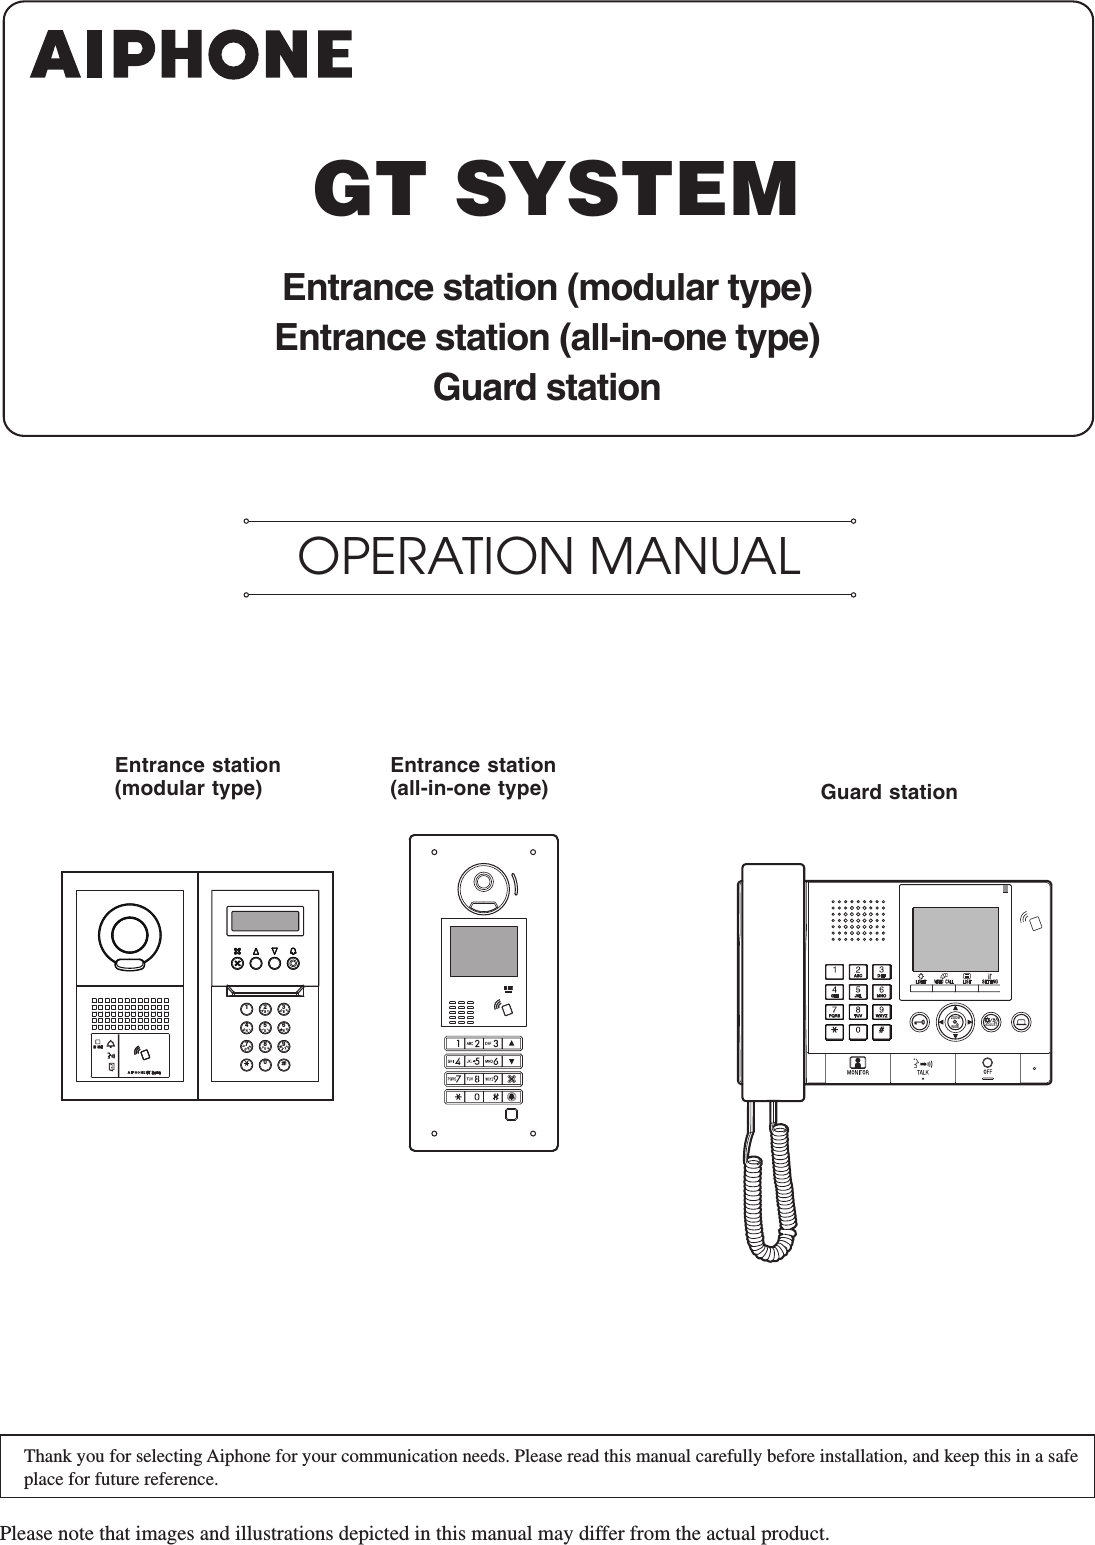 aiphone gt 1c7 wiring diagram Download-Page 1 of GTDMBN GT Apartment Inter System User Manual ENG GT DMB MKB 17 05 29 5-o